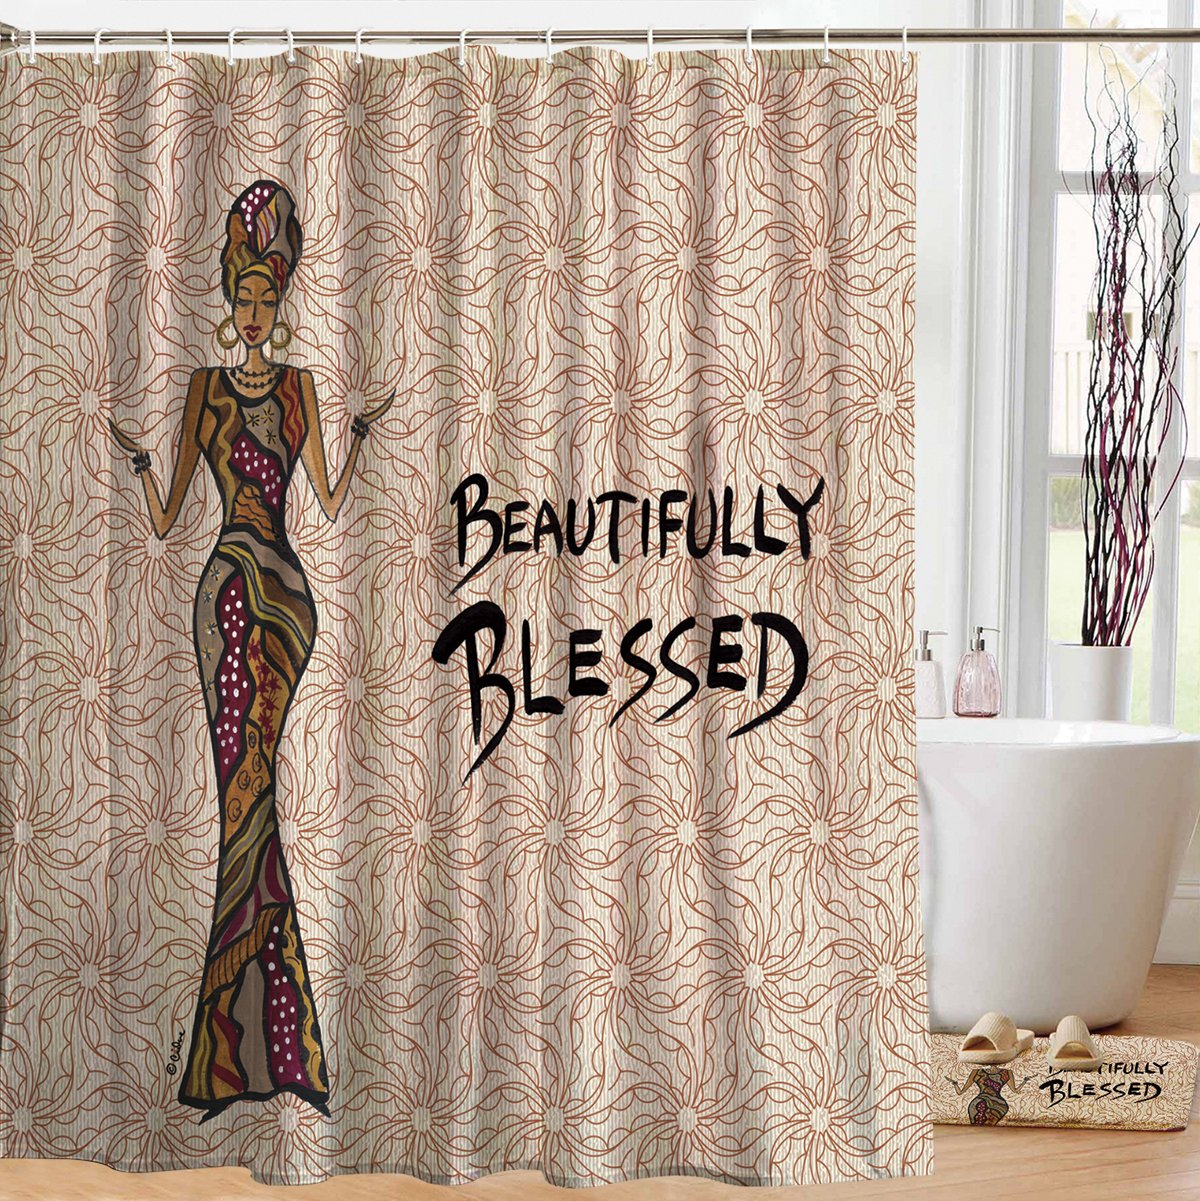 Beautifully Blessed: African American Shower Curtain by Cidne Wallace